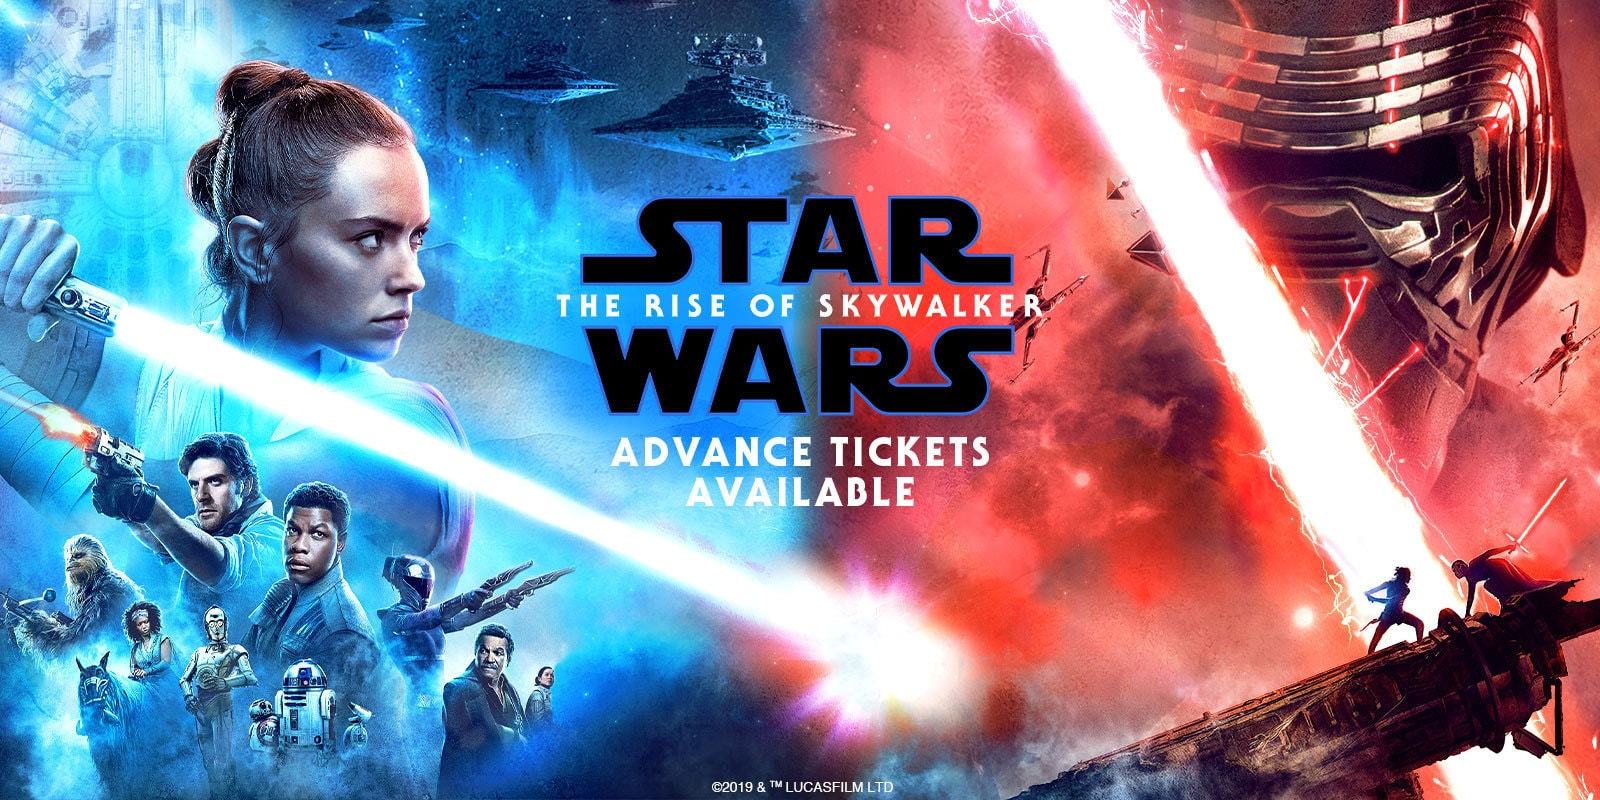 Star Wars Episode IX: The Rise of Luke Skywalker - Banner Hero Object for ATS